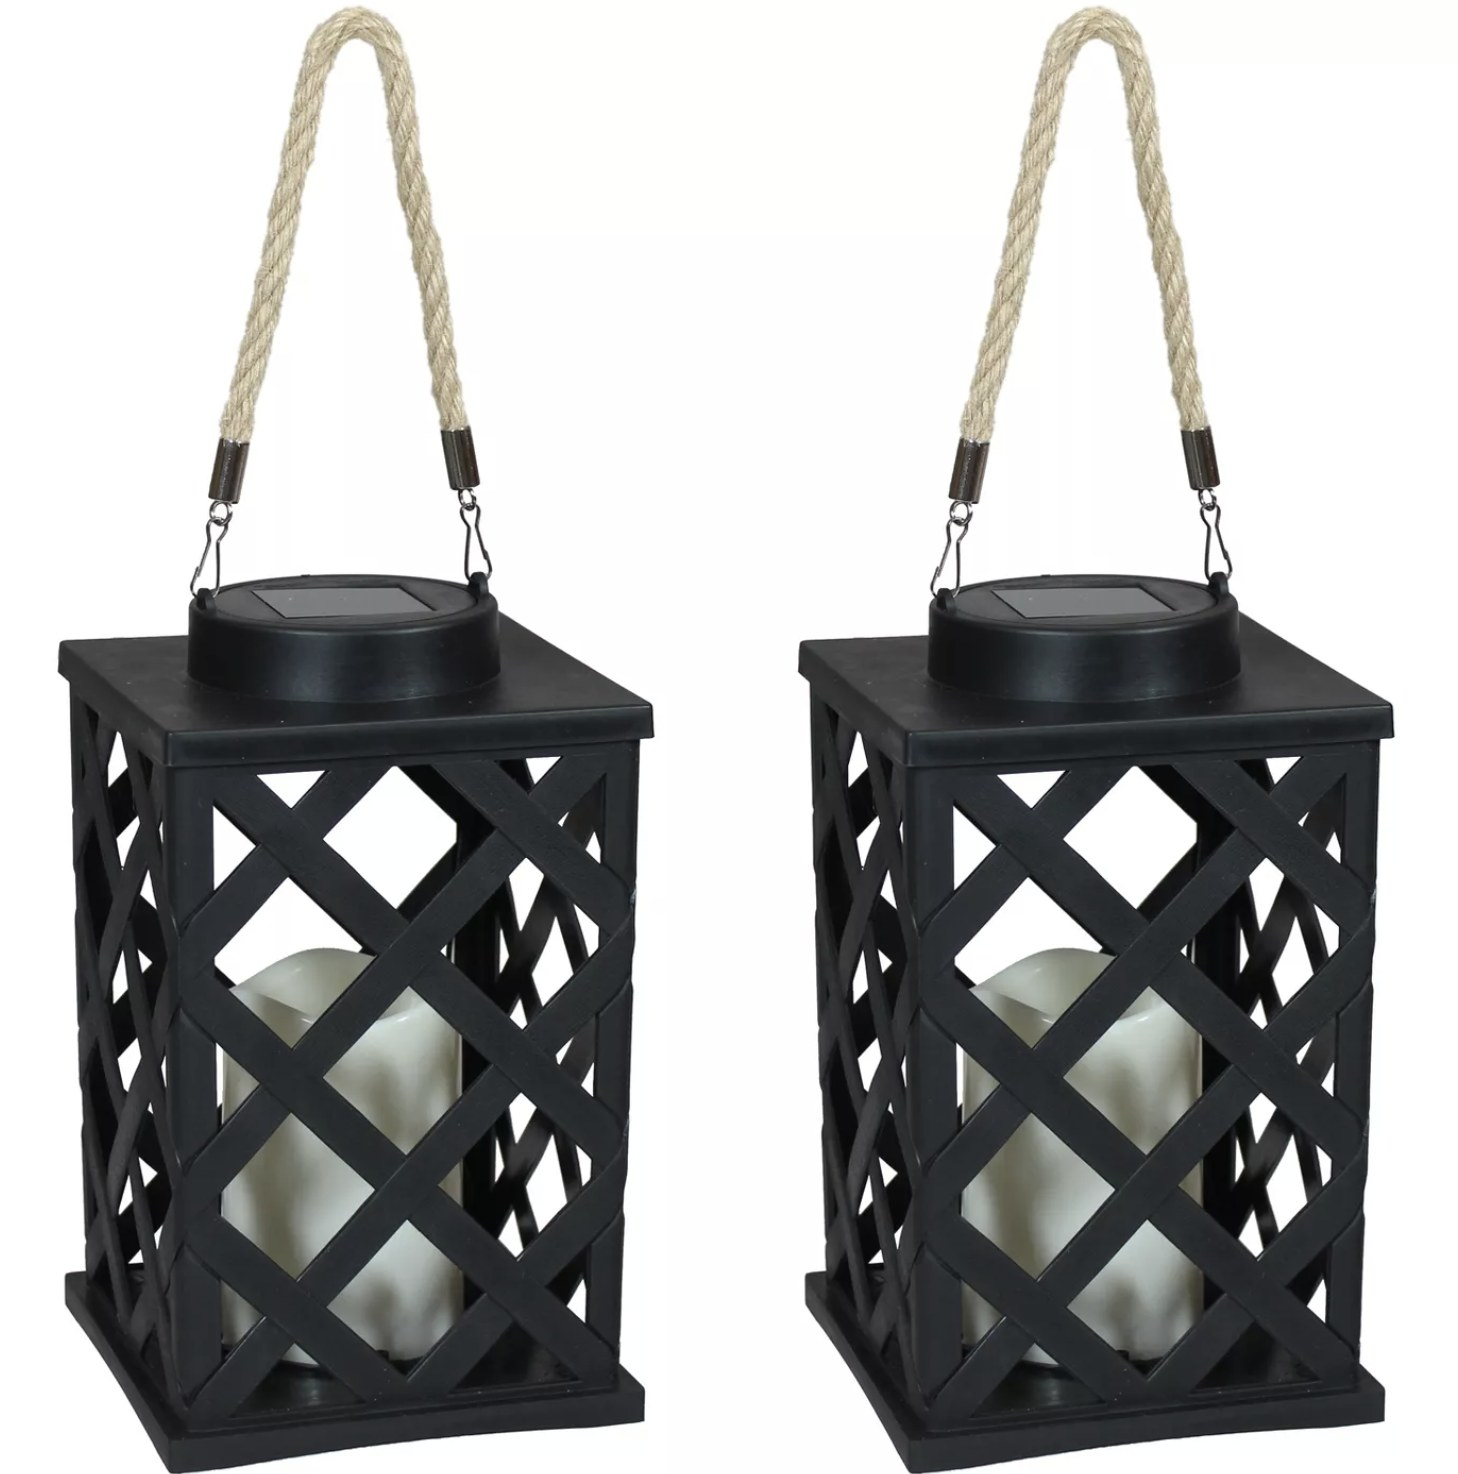 Two black solar-powered LED lanterns with candles inside and ropes attached to hang